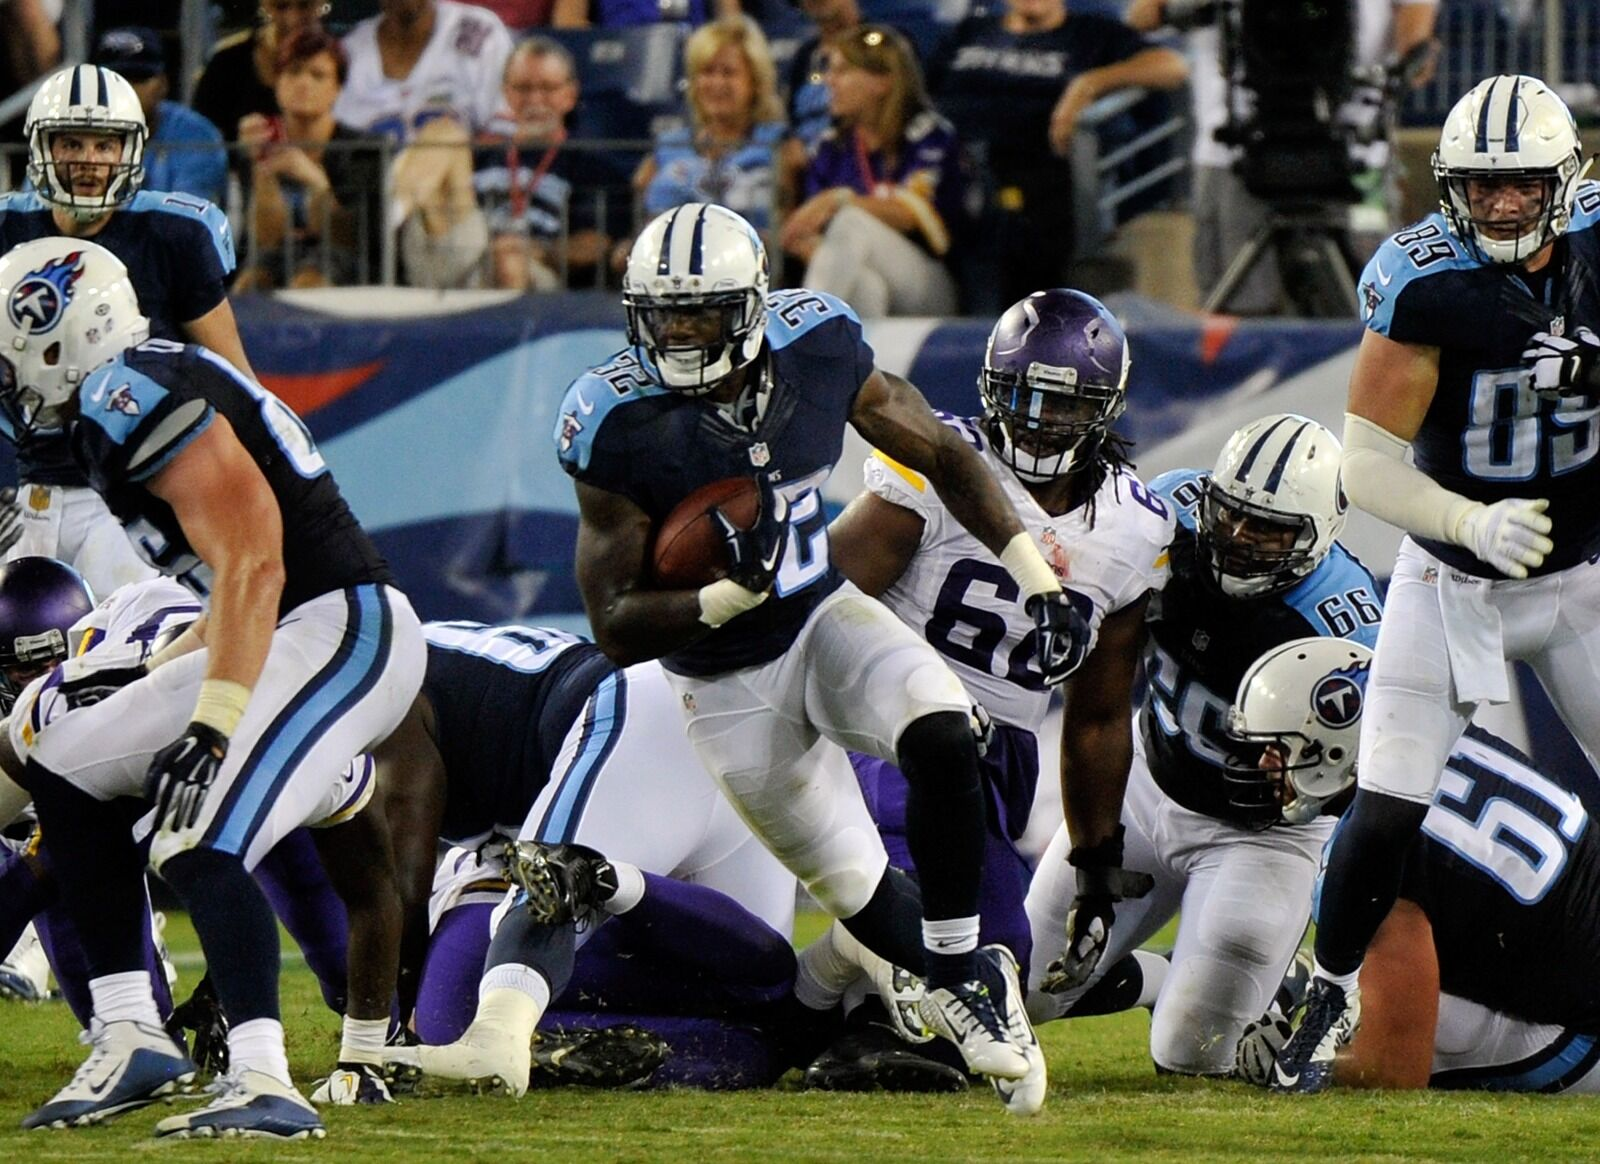 Tennessee Titans inactives list for Week 2 vs. Indianapolis Colts